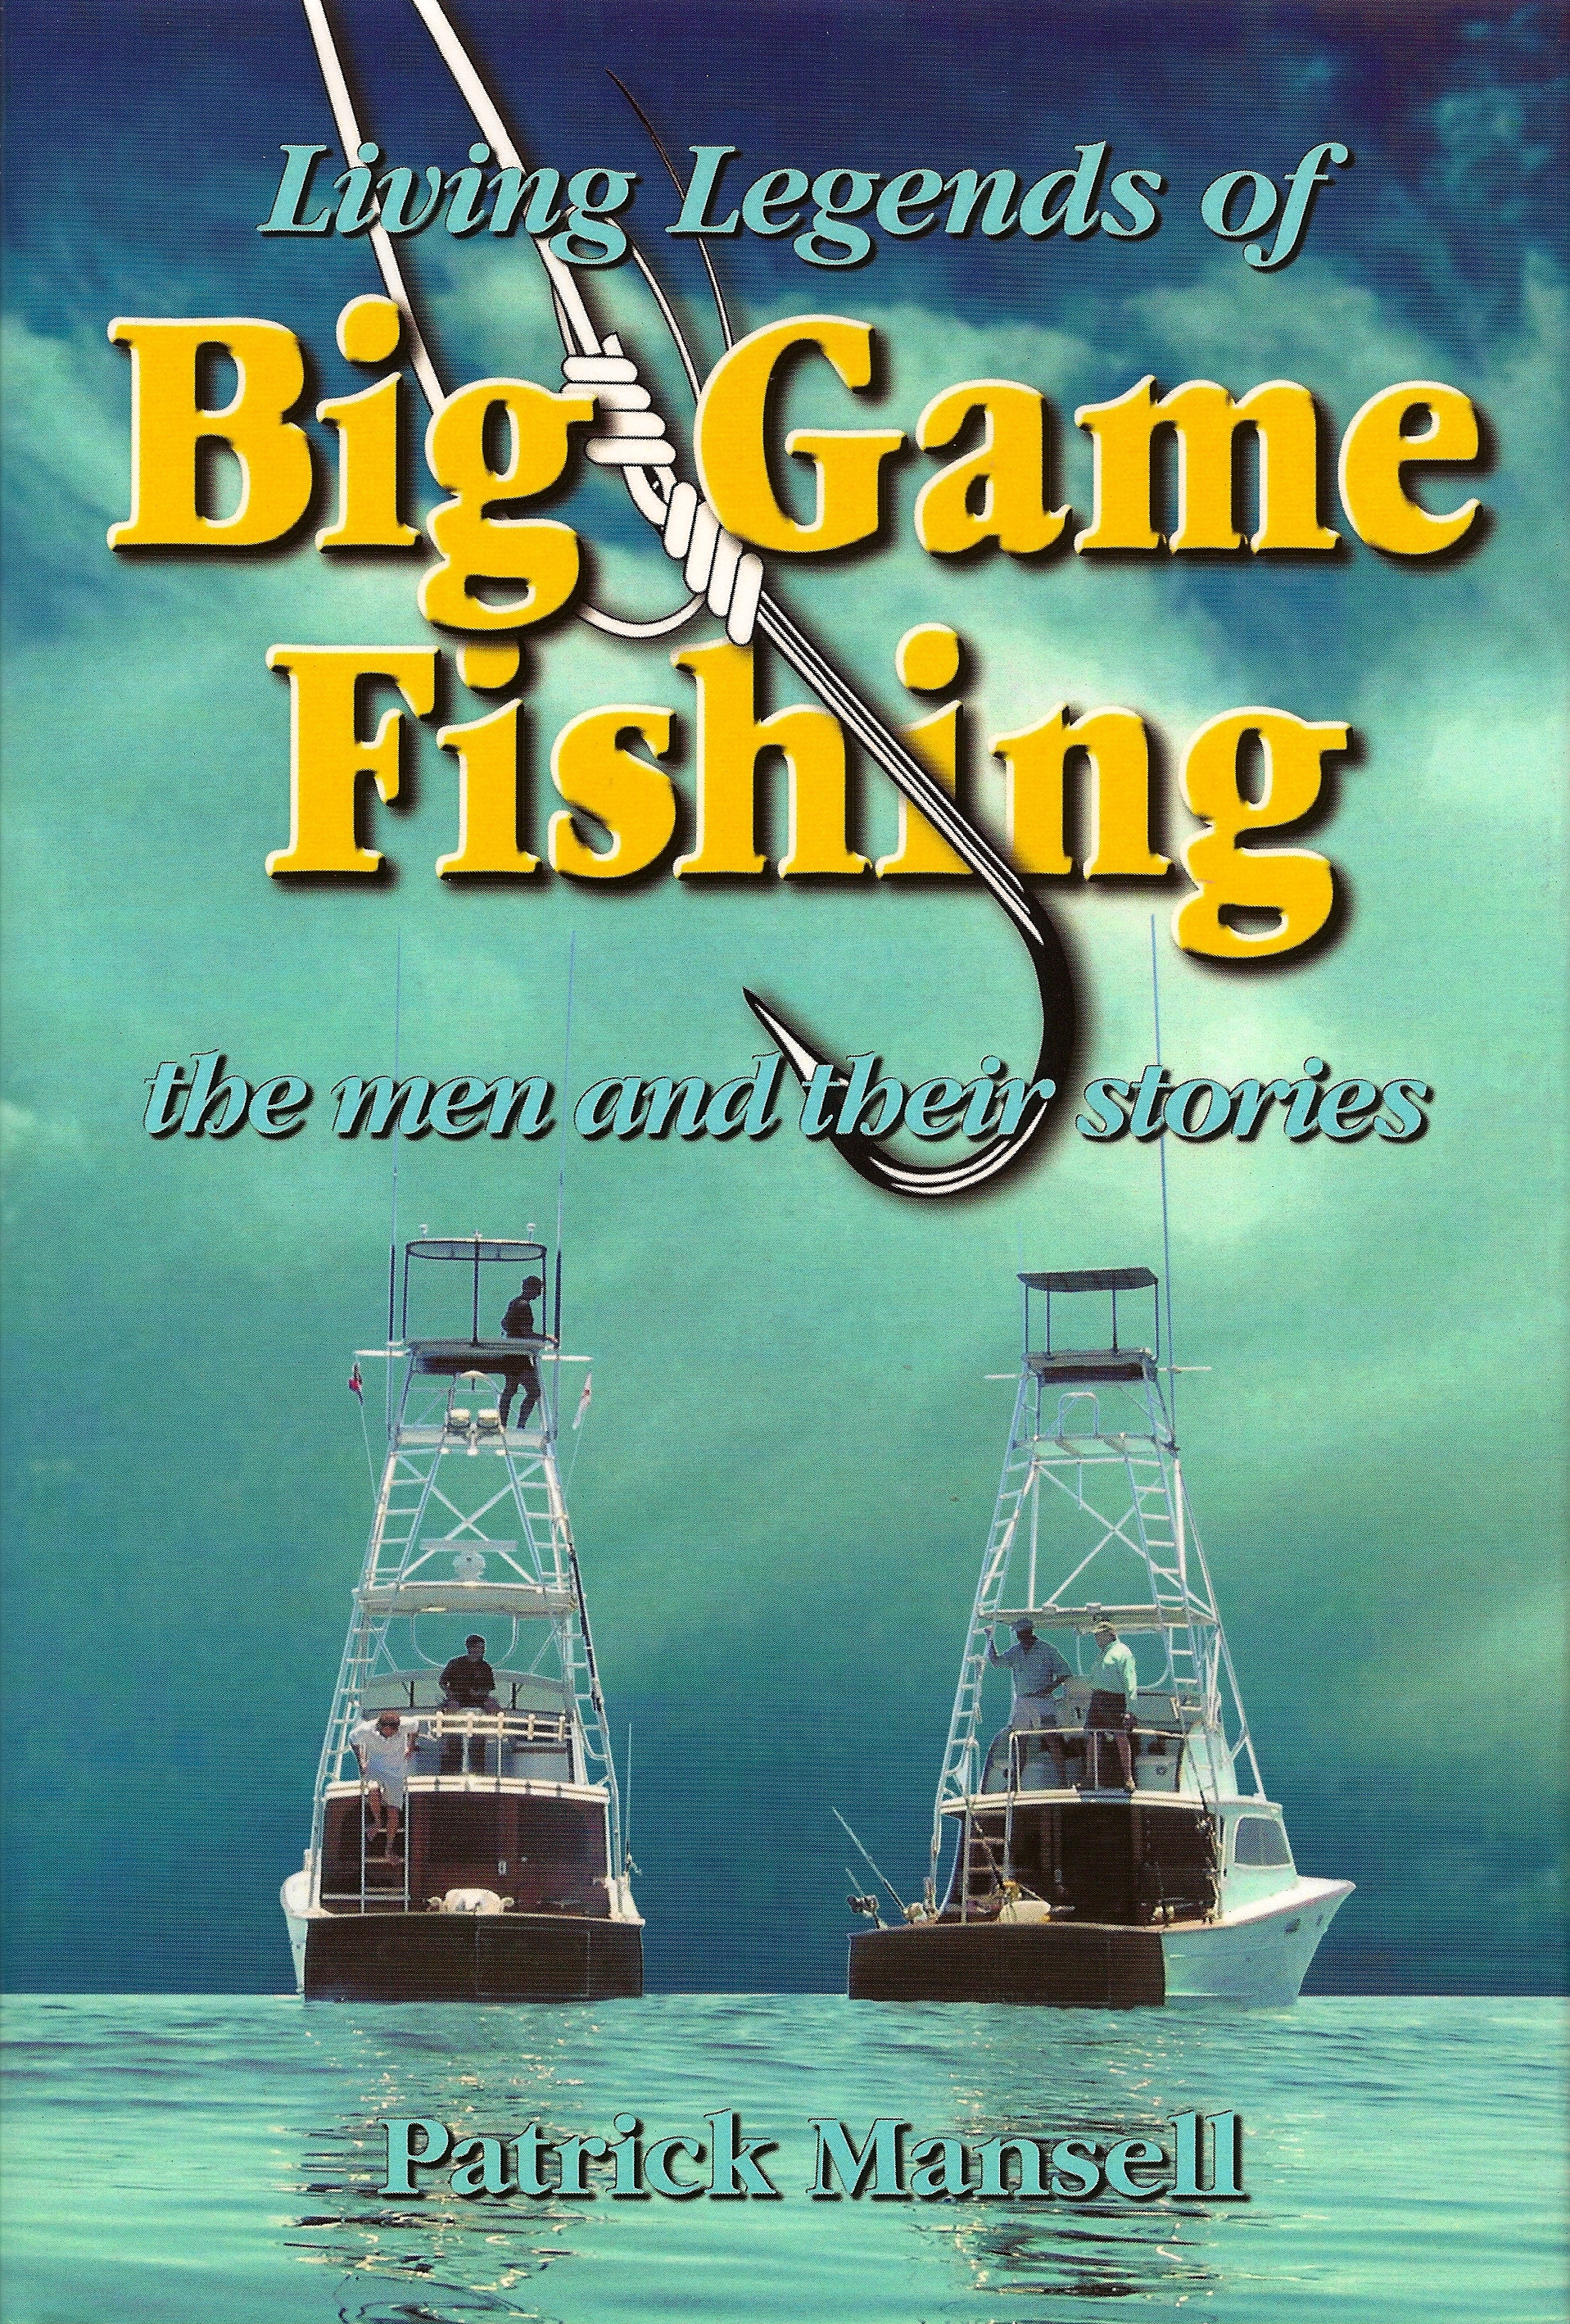 Living Legends of Big Game Fishing